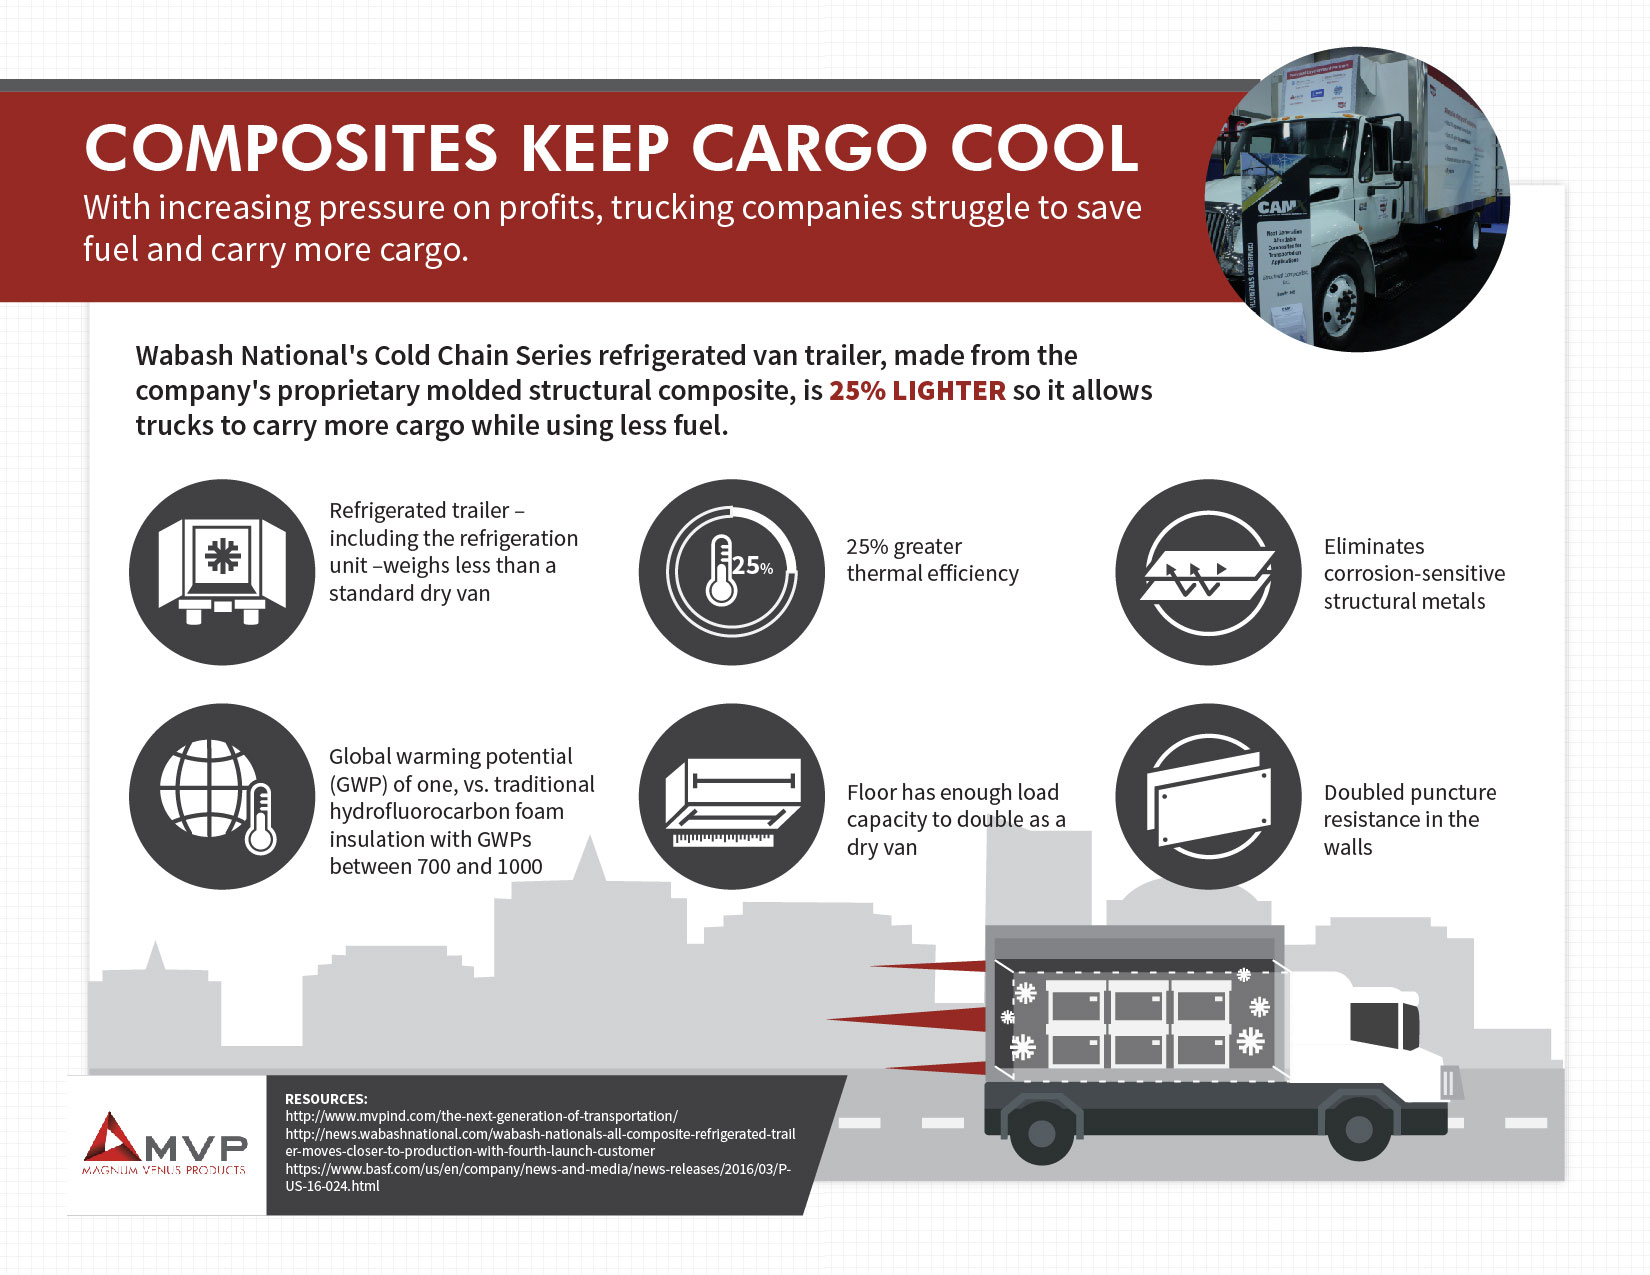 Composistes-Keep-Cargo-Cool